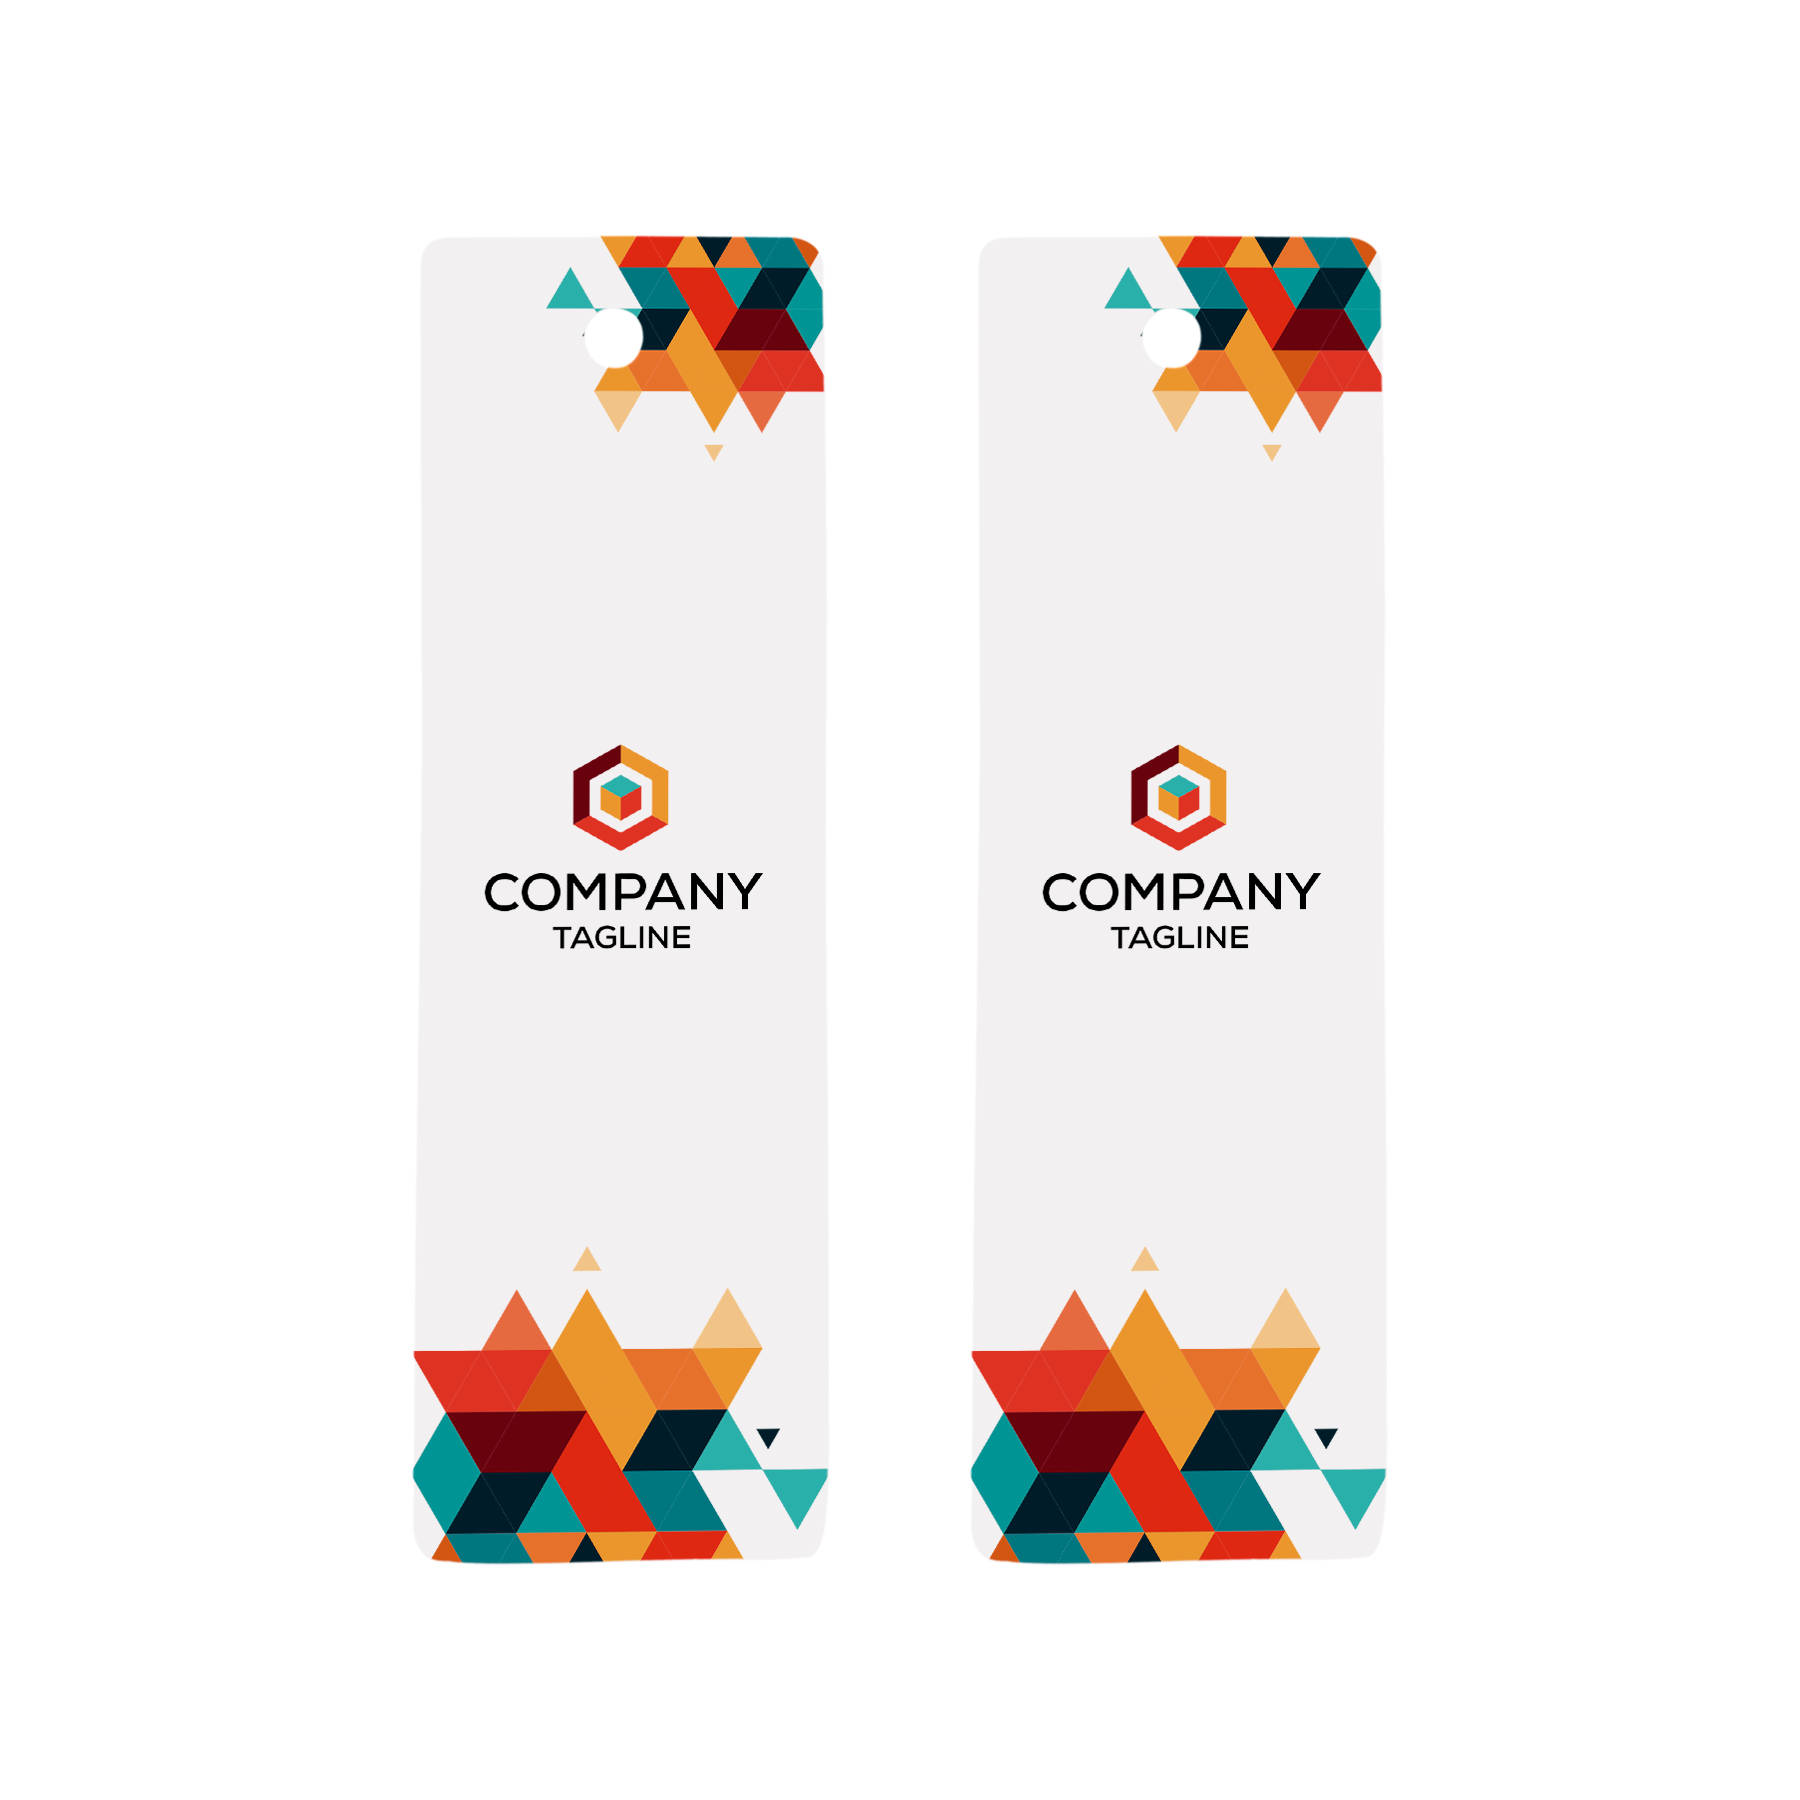 https://www.shortstackprinting.com.au/images/products_gallery_images/138_Bookmark-mockup-3-1800x1800px.png